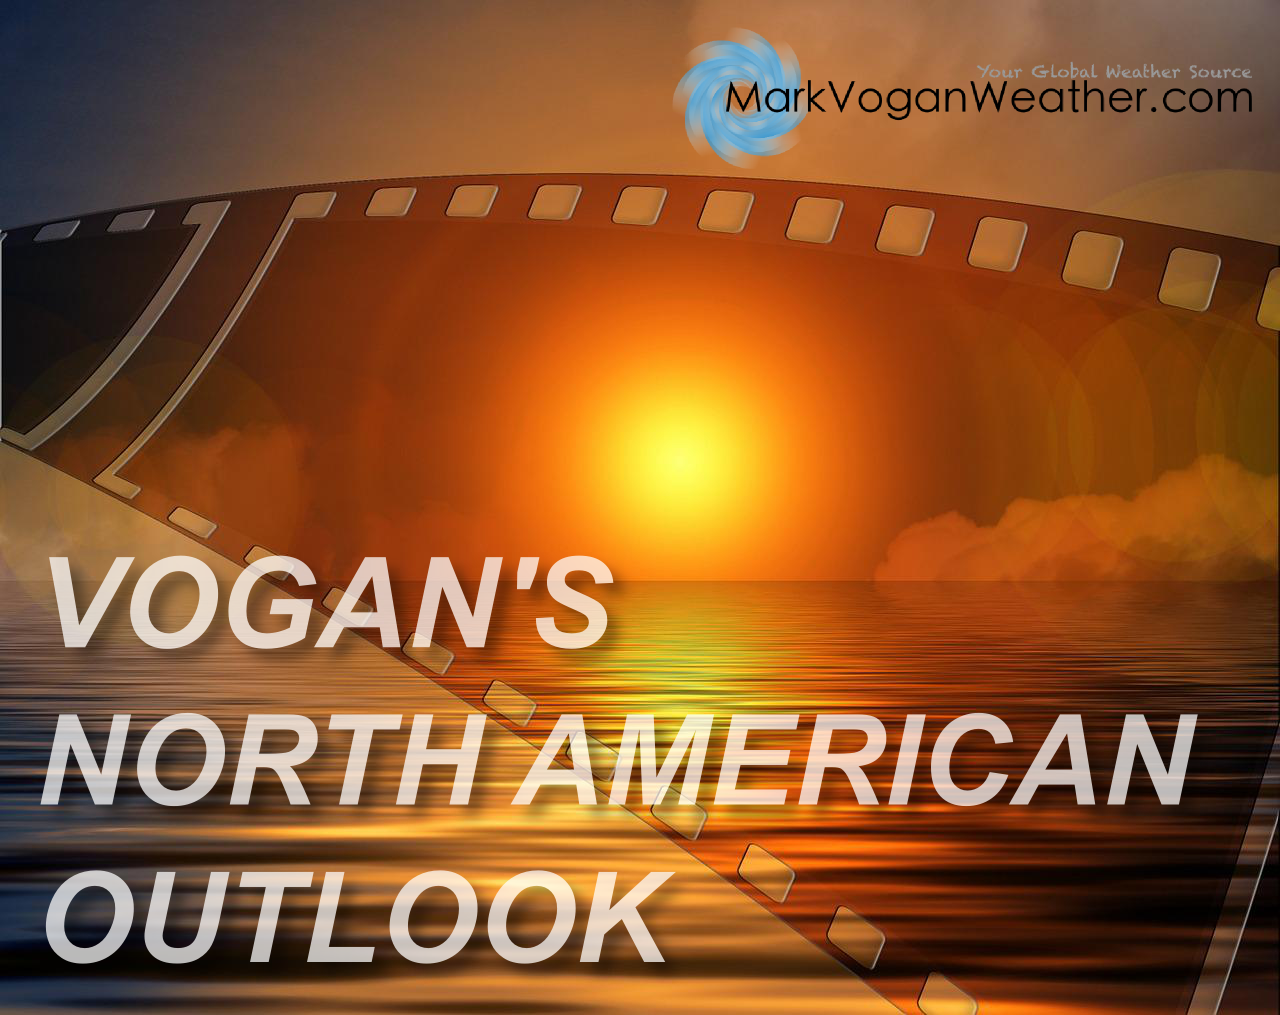 SUN 30 MAR: VOGAN'S NORTH AMERICAN OUTLOOK